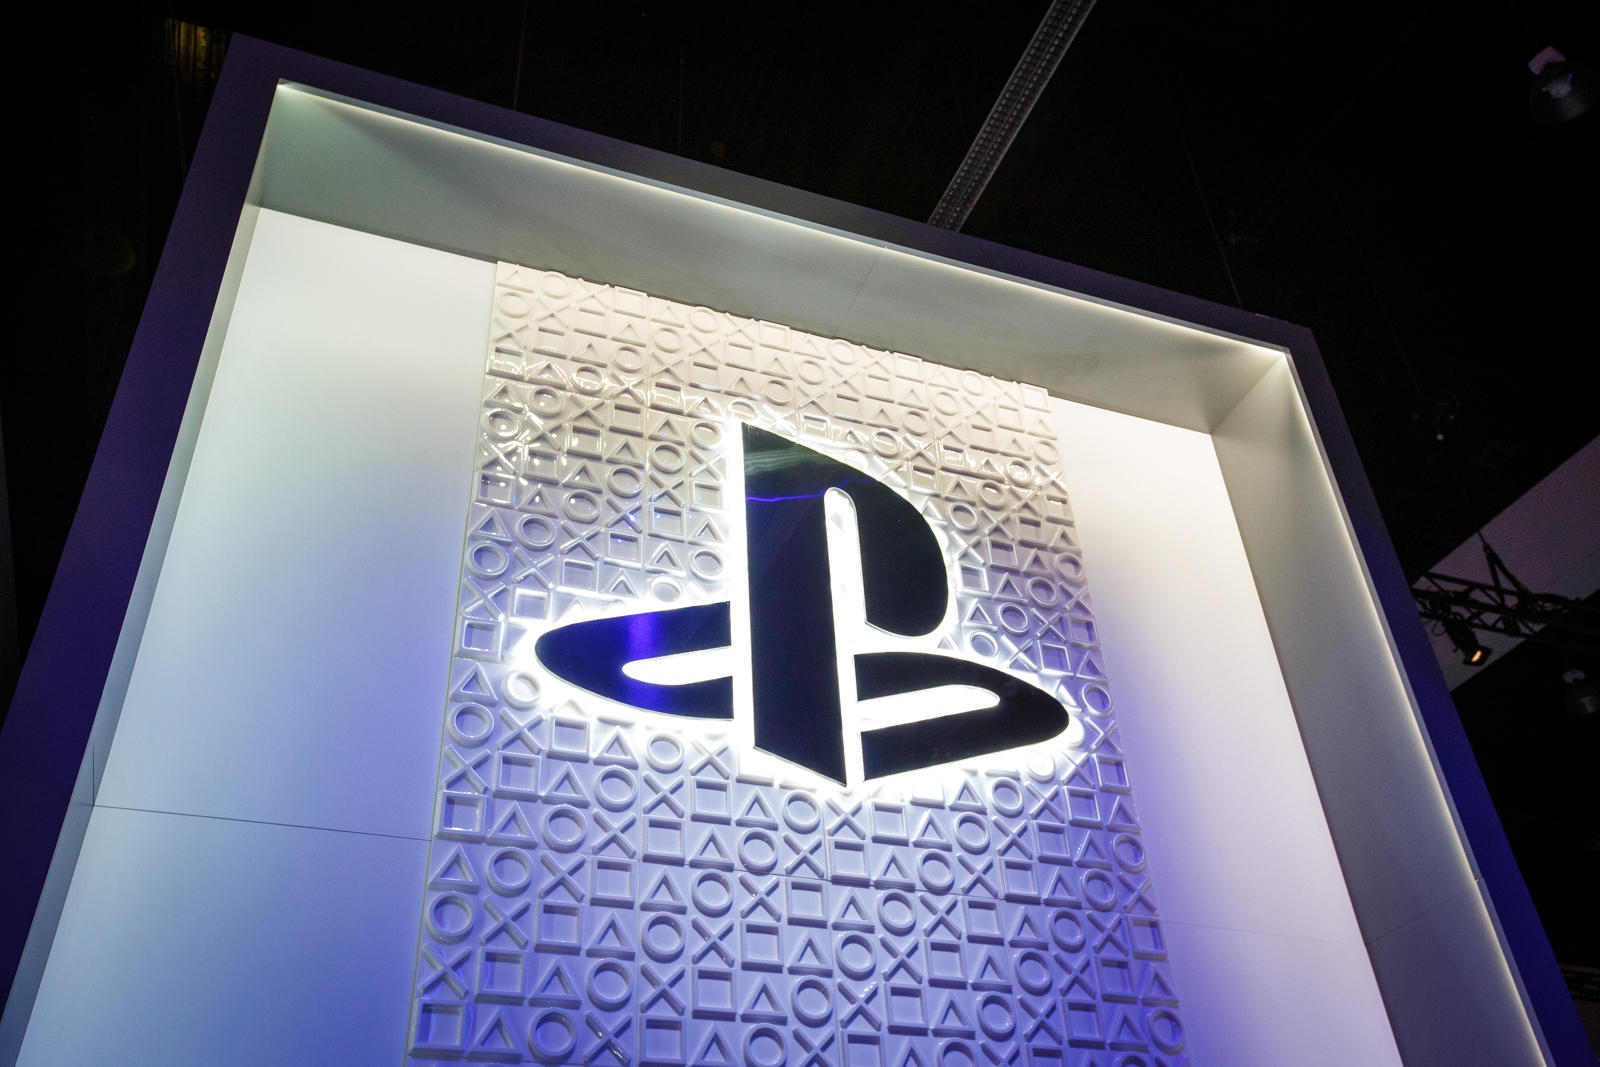 sony-e3-booth-2018-6628